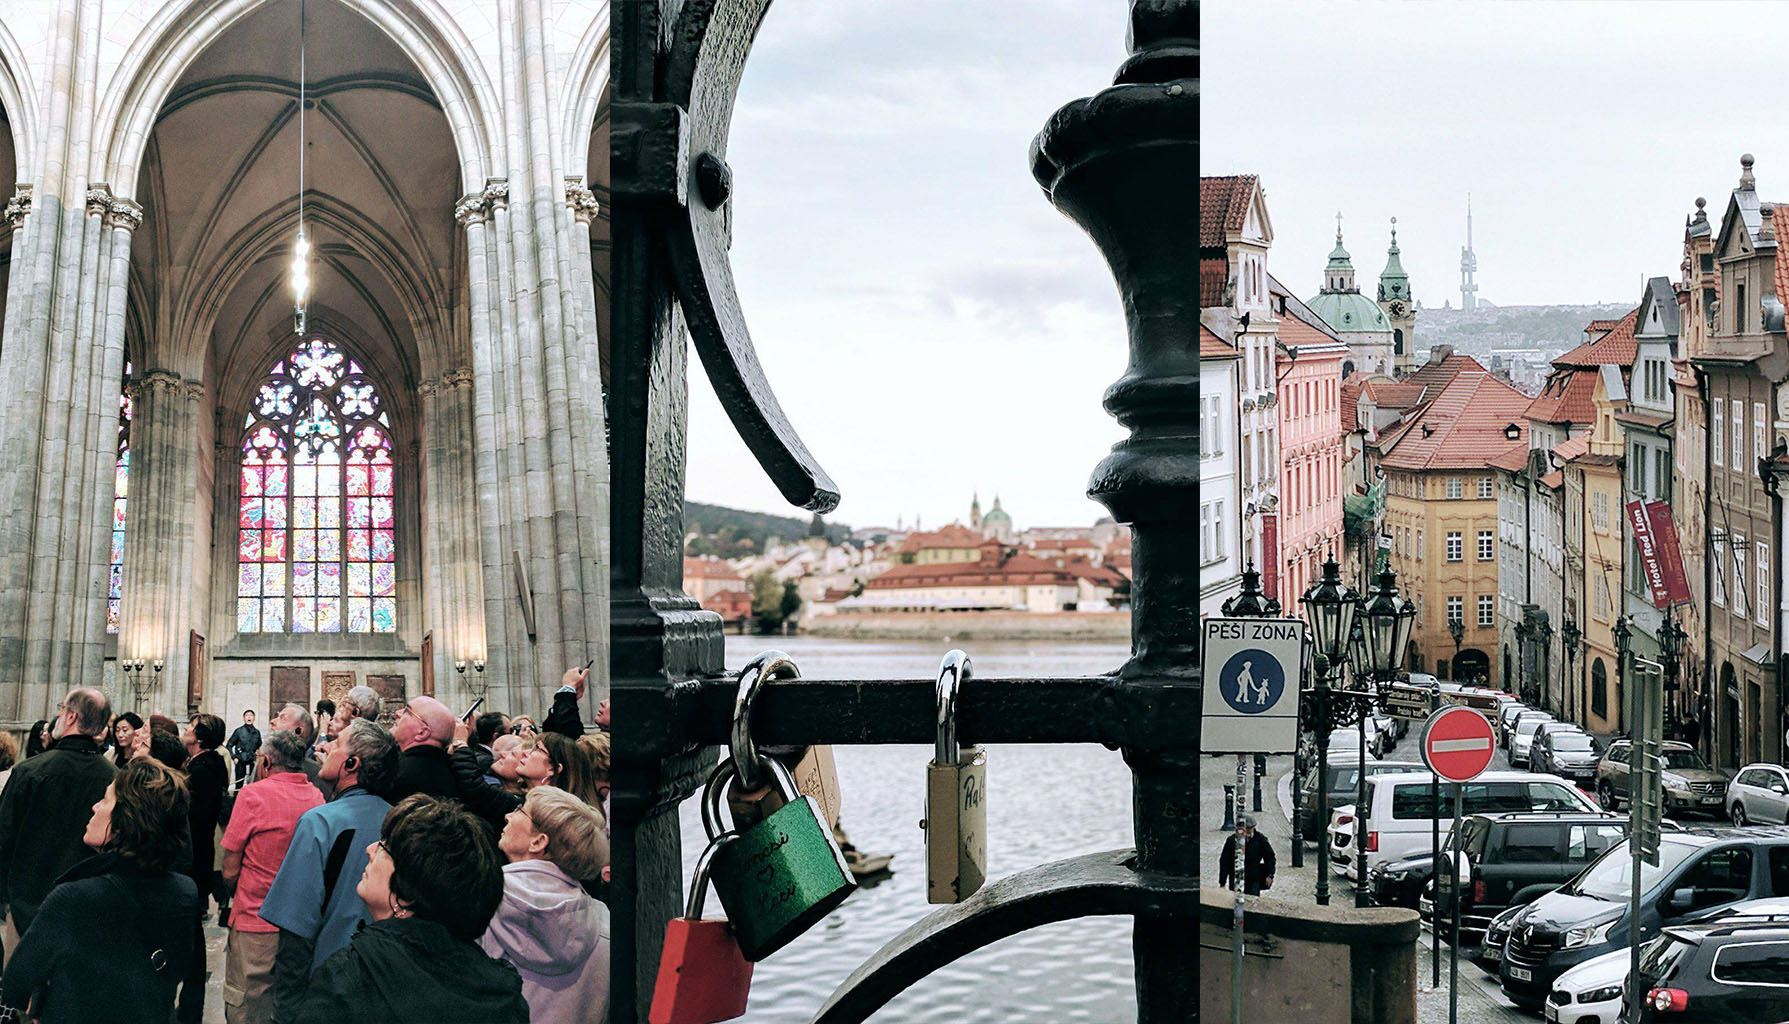 While we were very fortunate to have experienced soo many cities, cultures and places;Prague was hands down our favorite. Between the history, food, city lines, castles, every bit was was incredible!With that, Prague now holds a spot at our top 3 favorite cities - yes it's THAT good!  Would highly recommend looking into house boat rentals on Air BnB - they come with pet swans!